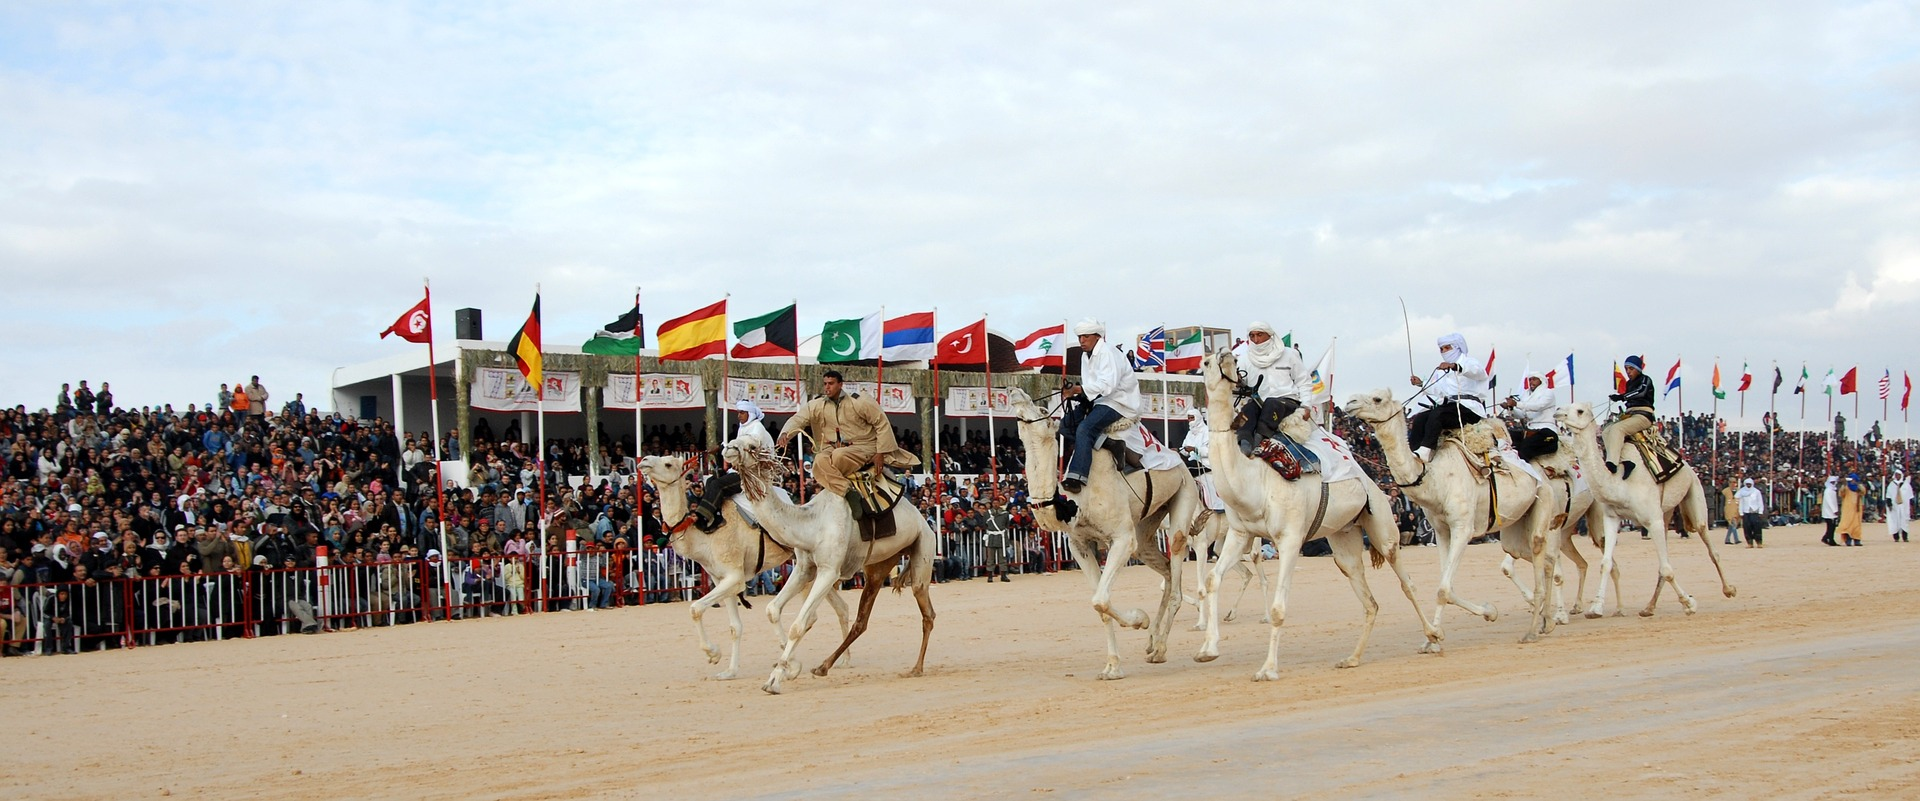 New app to auction camels released in Oman